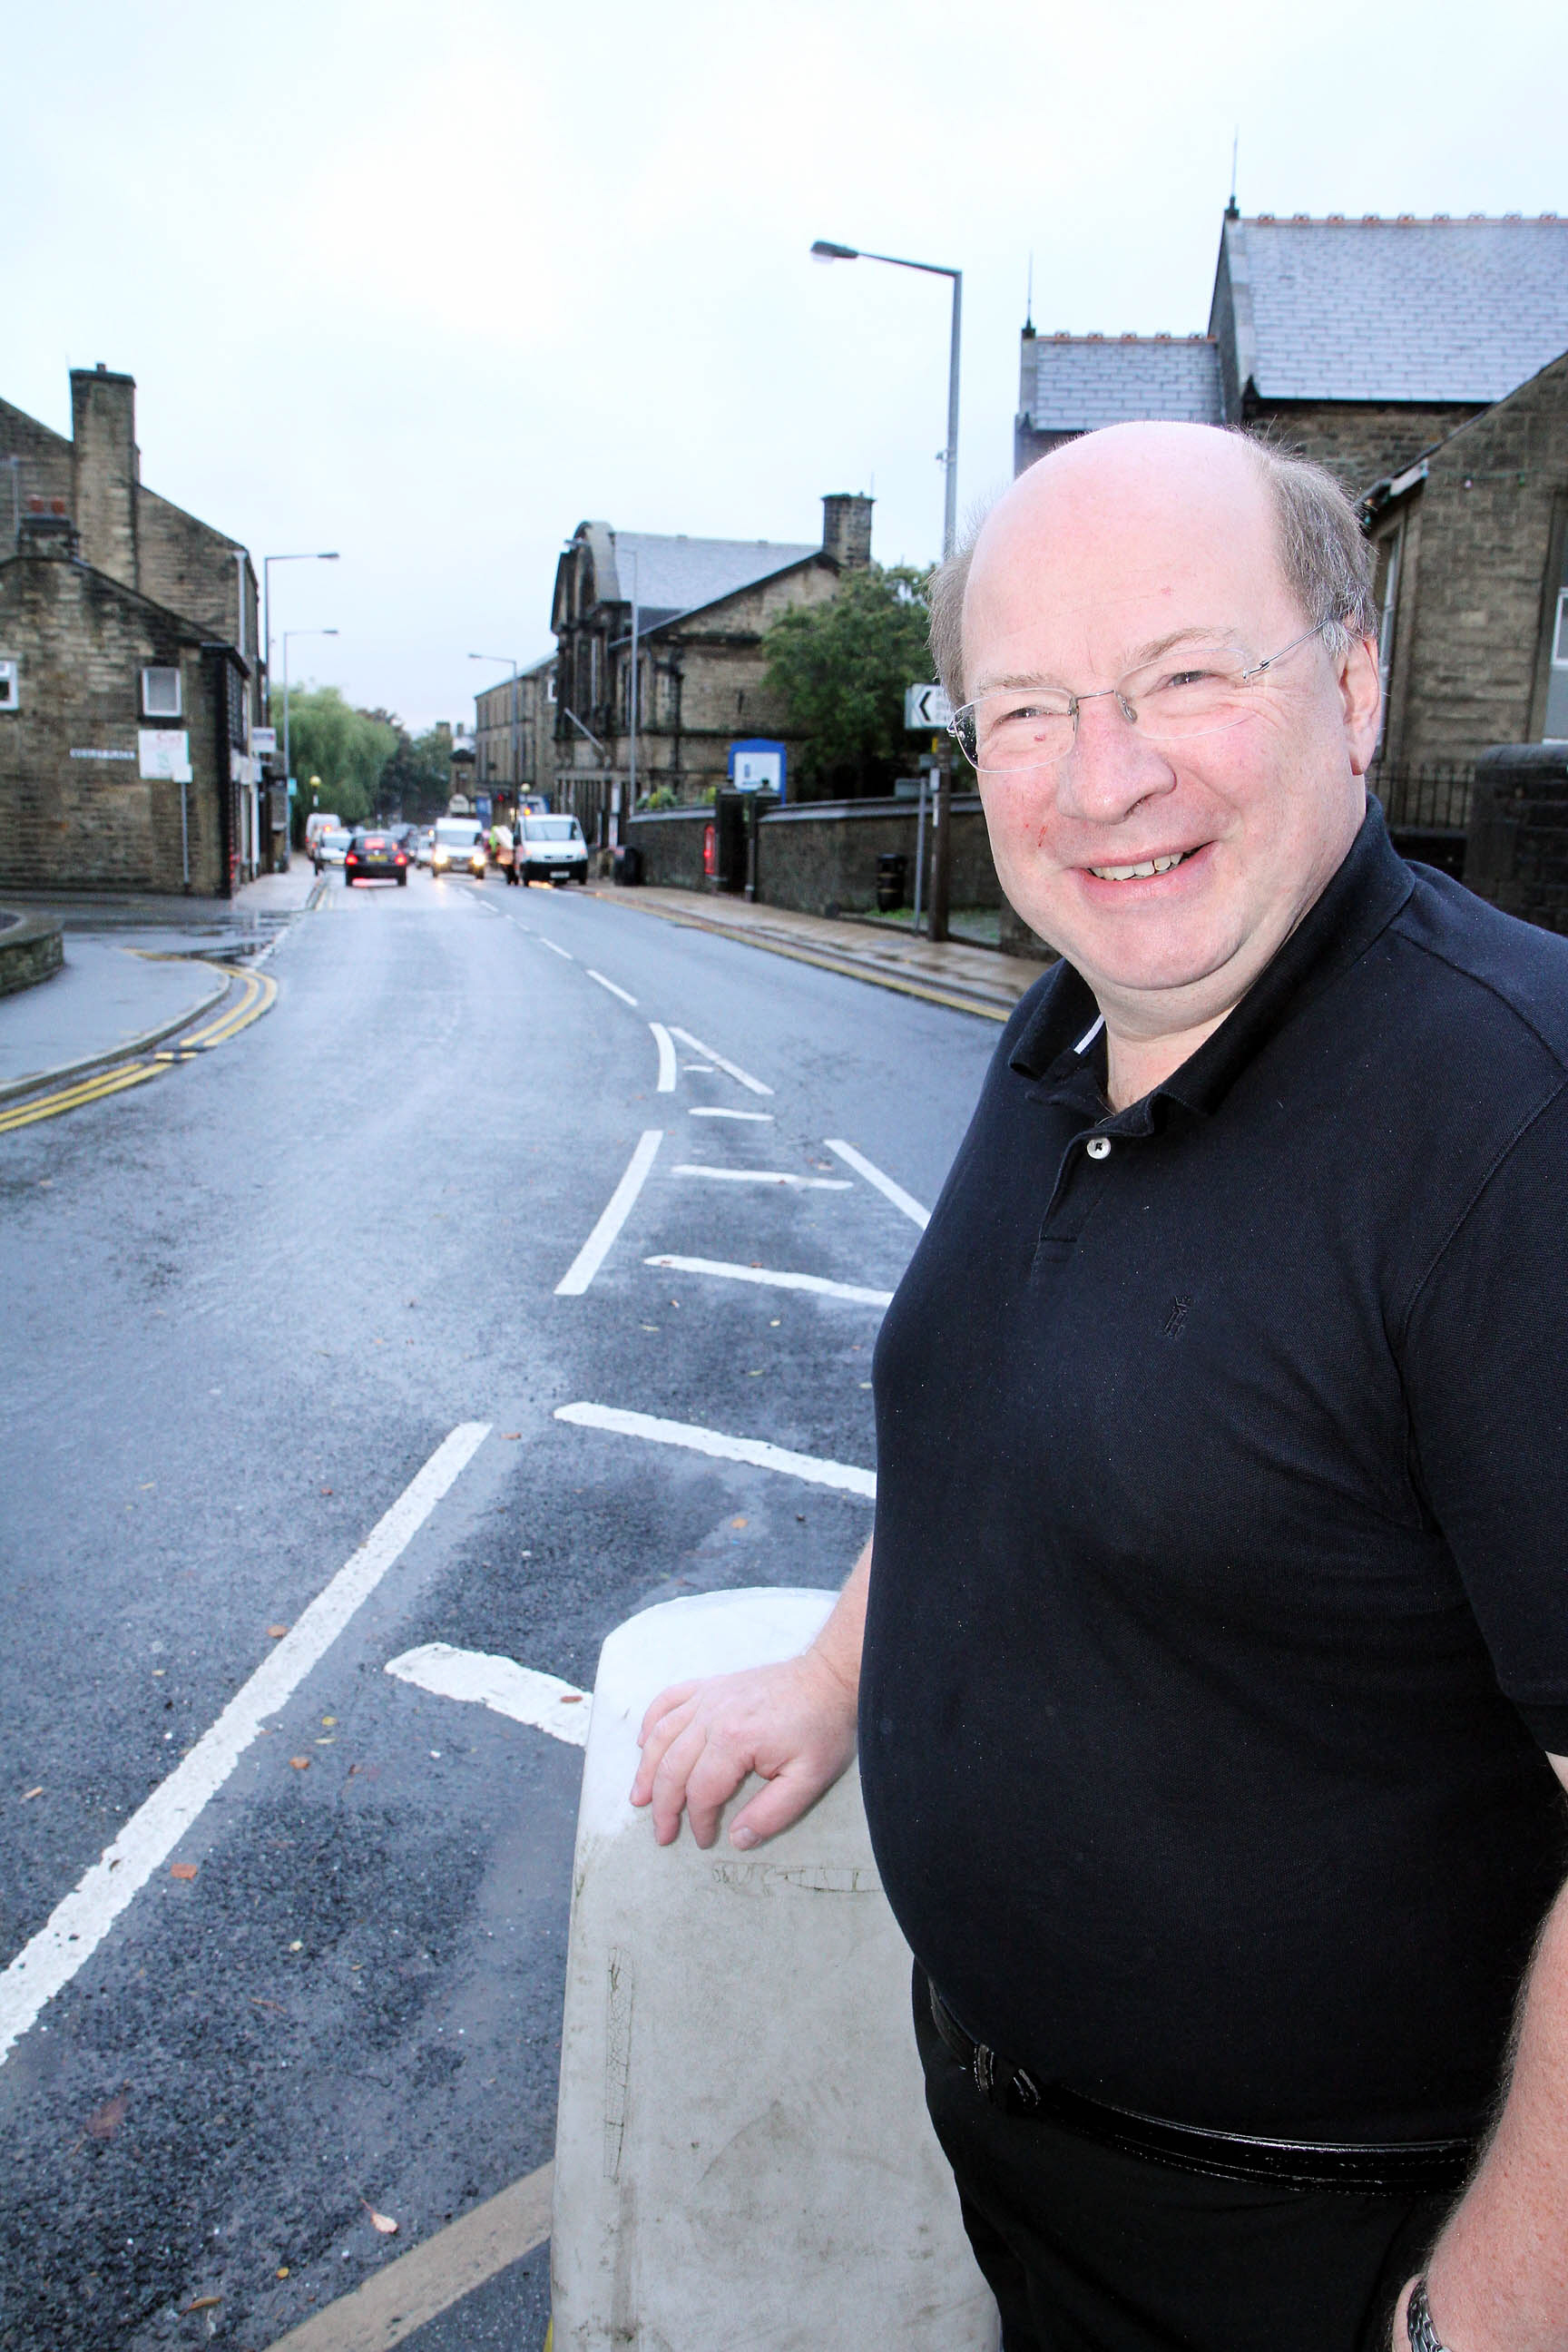 Gas pipe disruption must be endured by Silsden people, says councillor